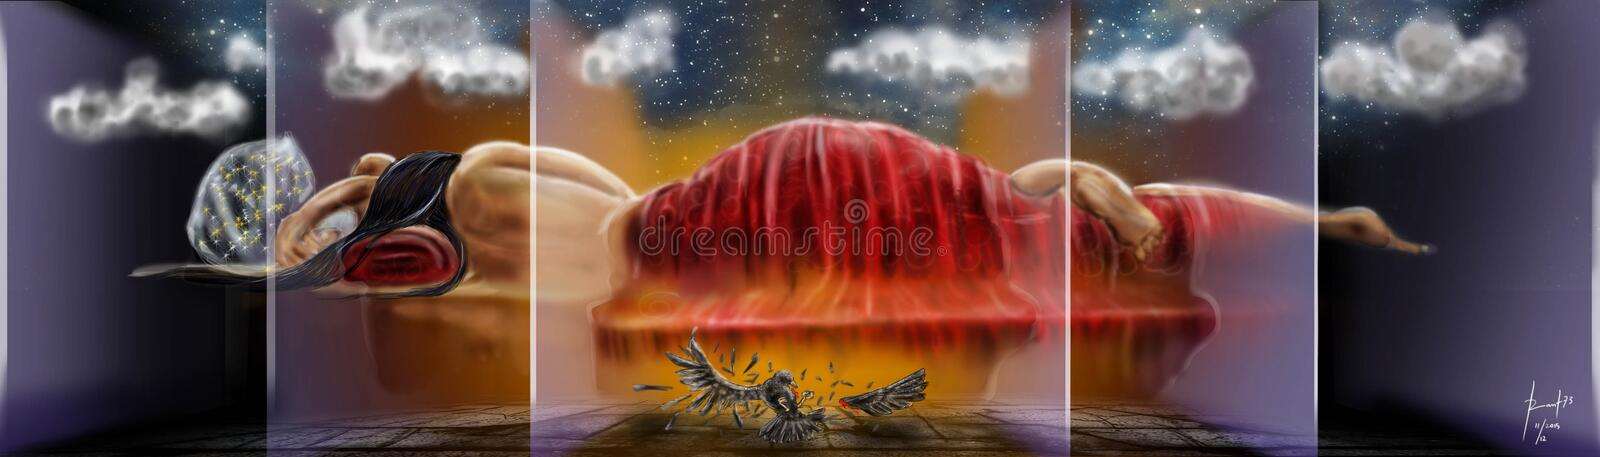 Handheld Closely Dream Before Waking Free Public Domain Cc0 Image